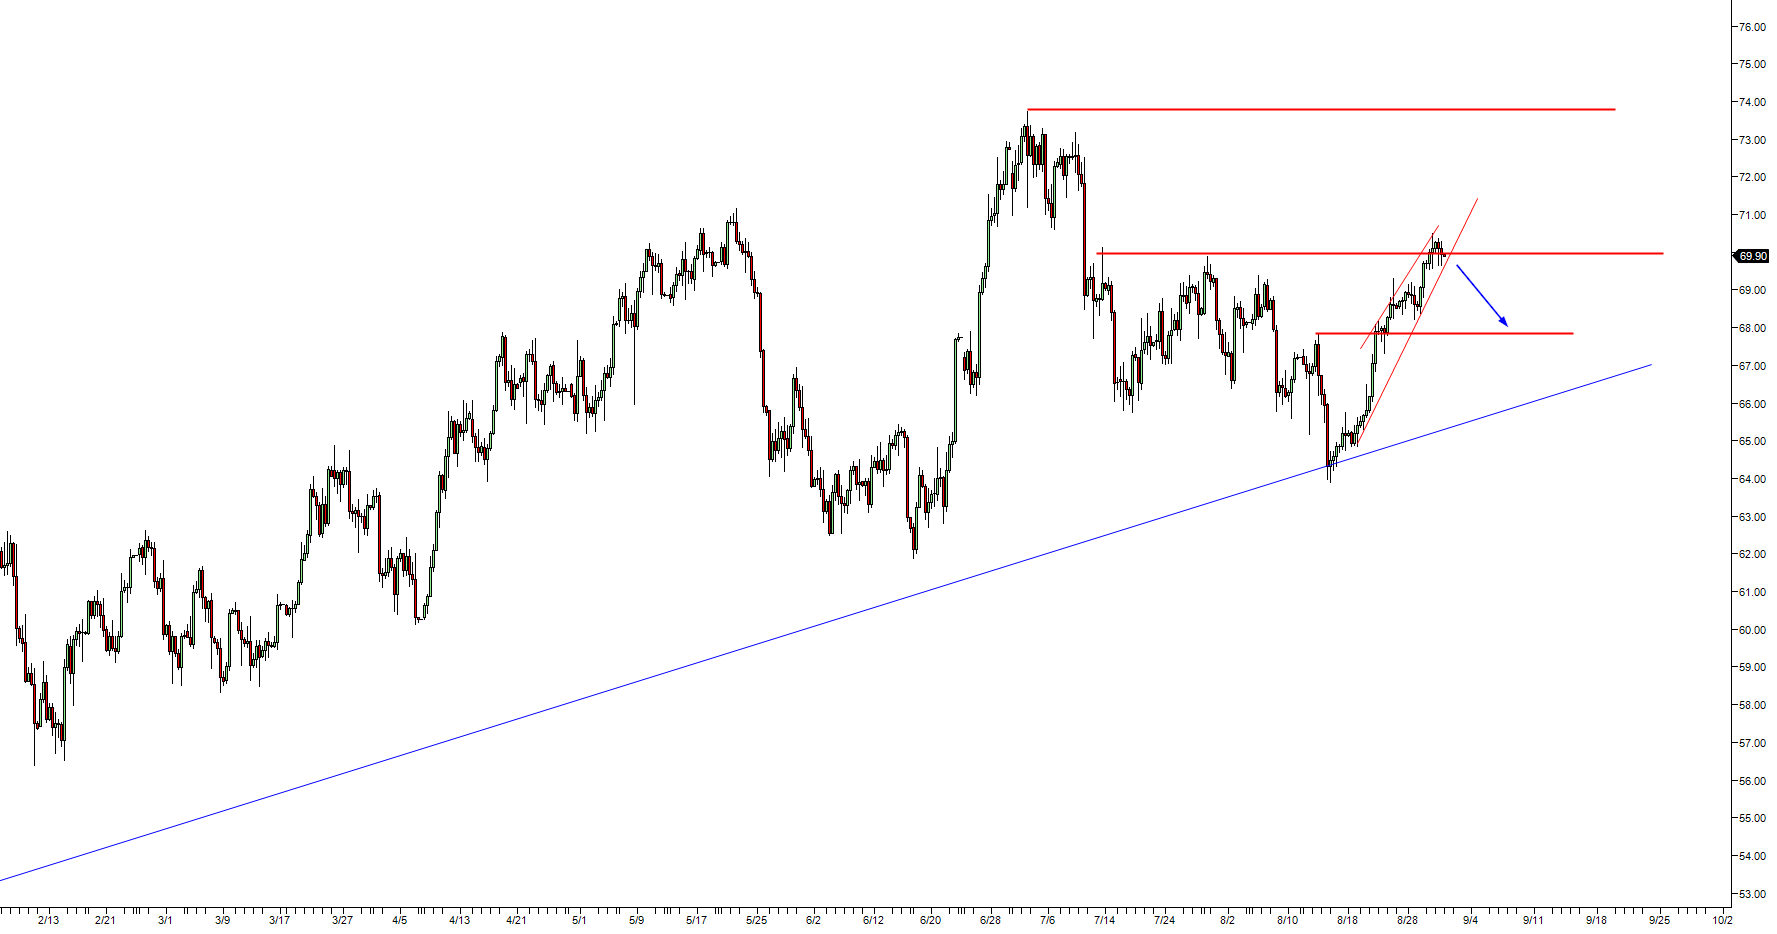 Crude Oil WTI Technical Analysis: Crowded trade can send WTI